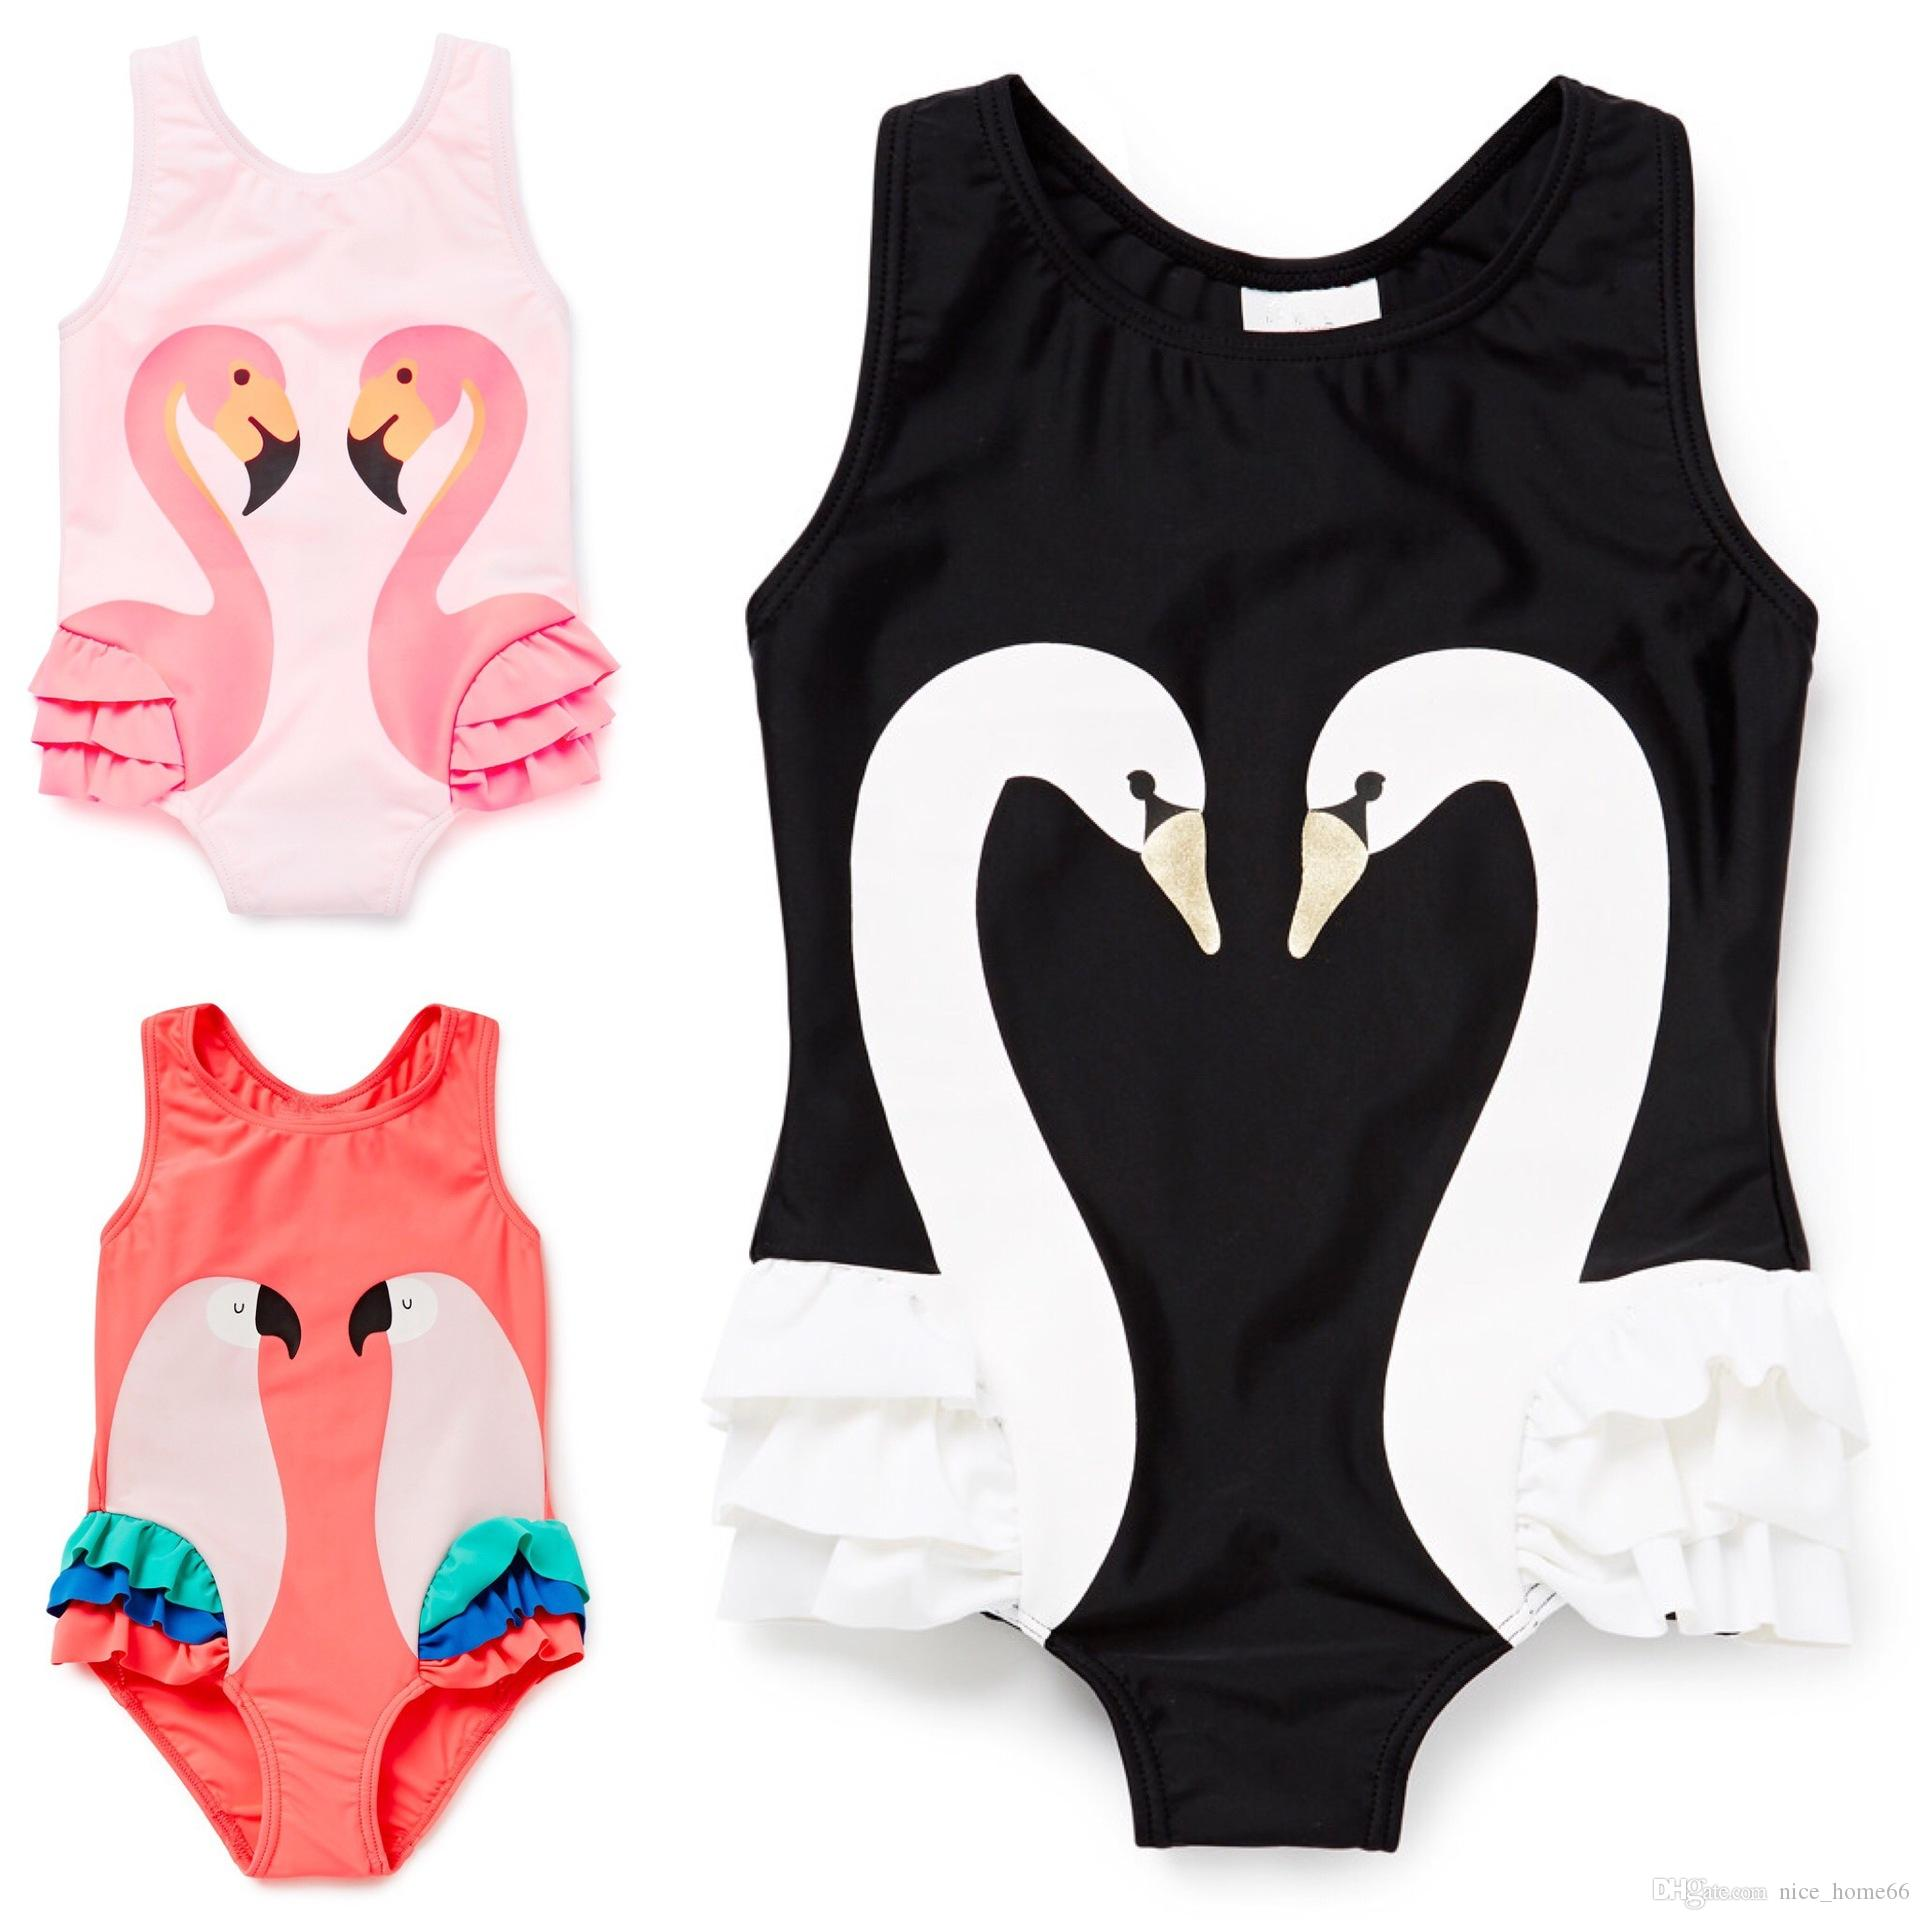 cd701314a5 2019 Black Swan Kids Swimwear One Piece Swimsuits Baby Girls Bikinis Sets  Bathing Suit Children Summer Swimsuit Cute Baby Beach Swimwear From  Nice_home66, ...